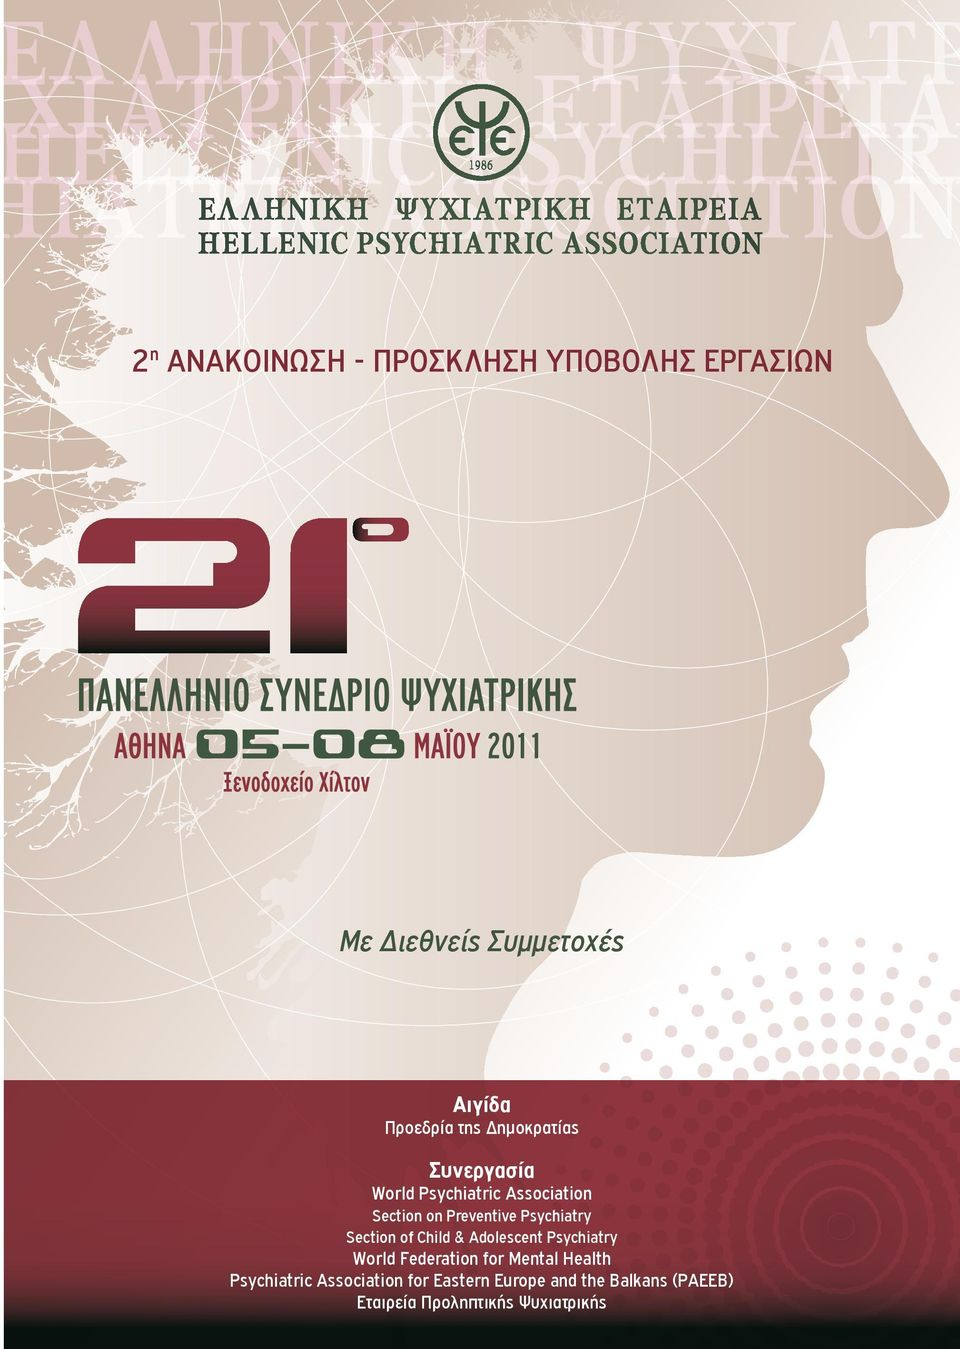 Section of Child & Adolescent Psychiatry World Federation for Mental Health